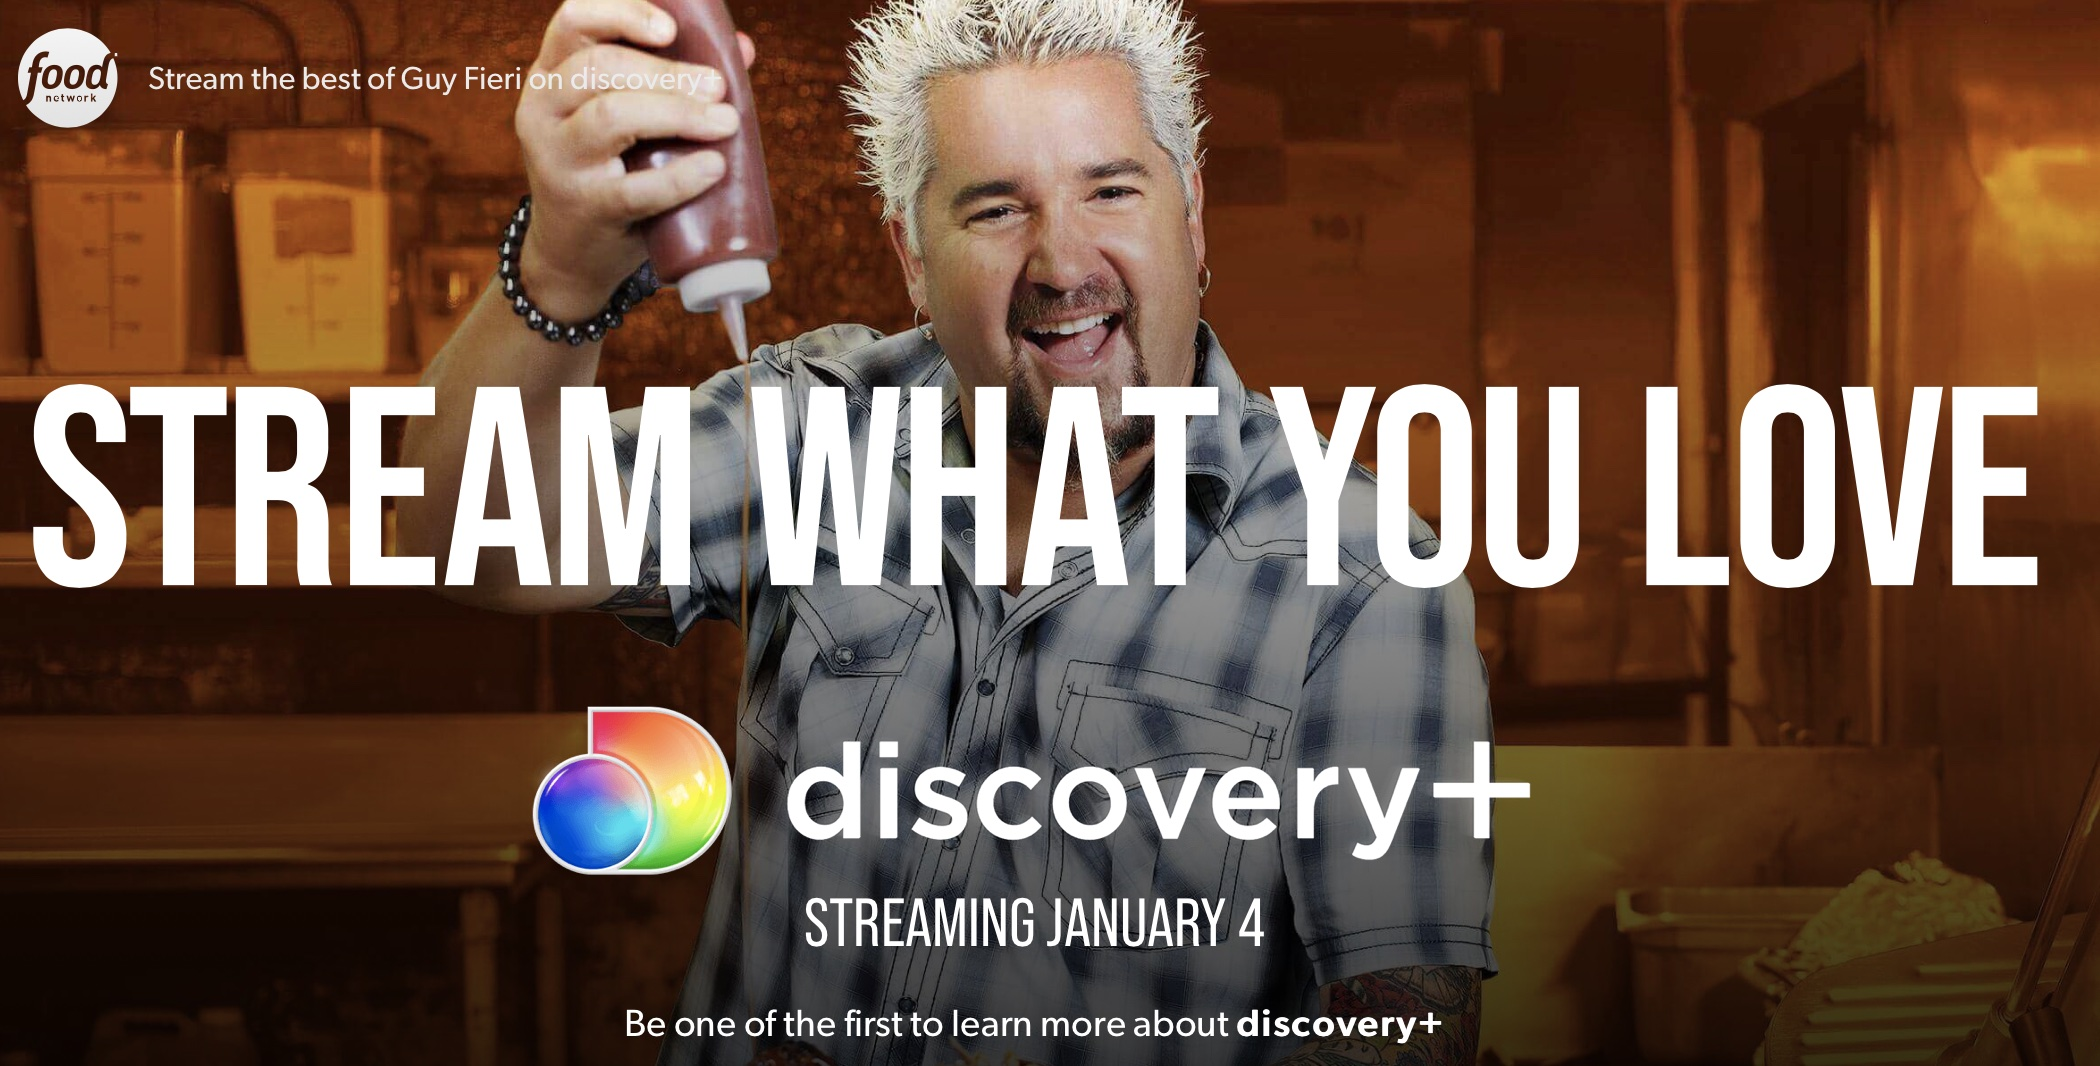 Discovery will launch its own streaming service on January 4